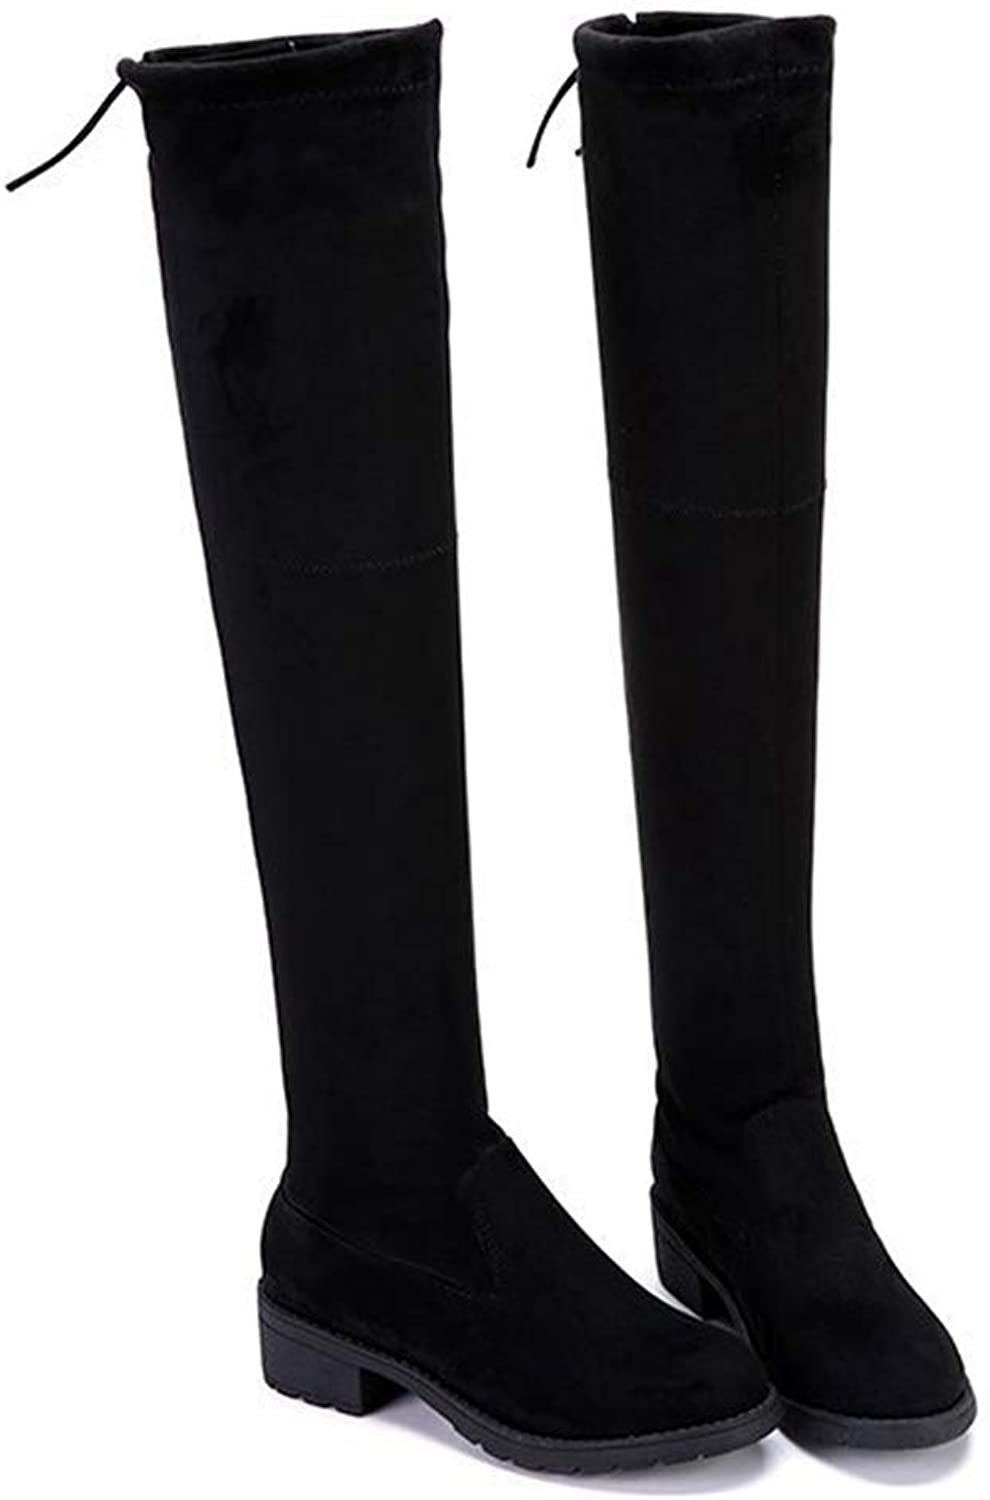 Andy Pansy Boots Women's Boots Autumn Winter New Thick Heel Flat Over Knee Boots Trend 100 take Cotton Boots Woman Type